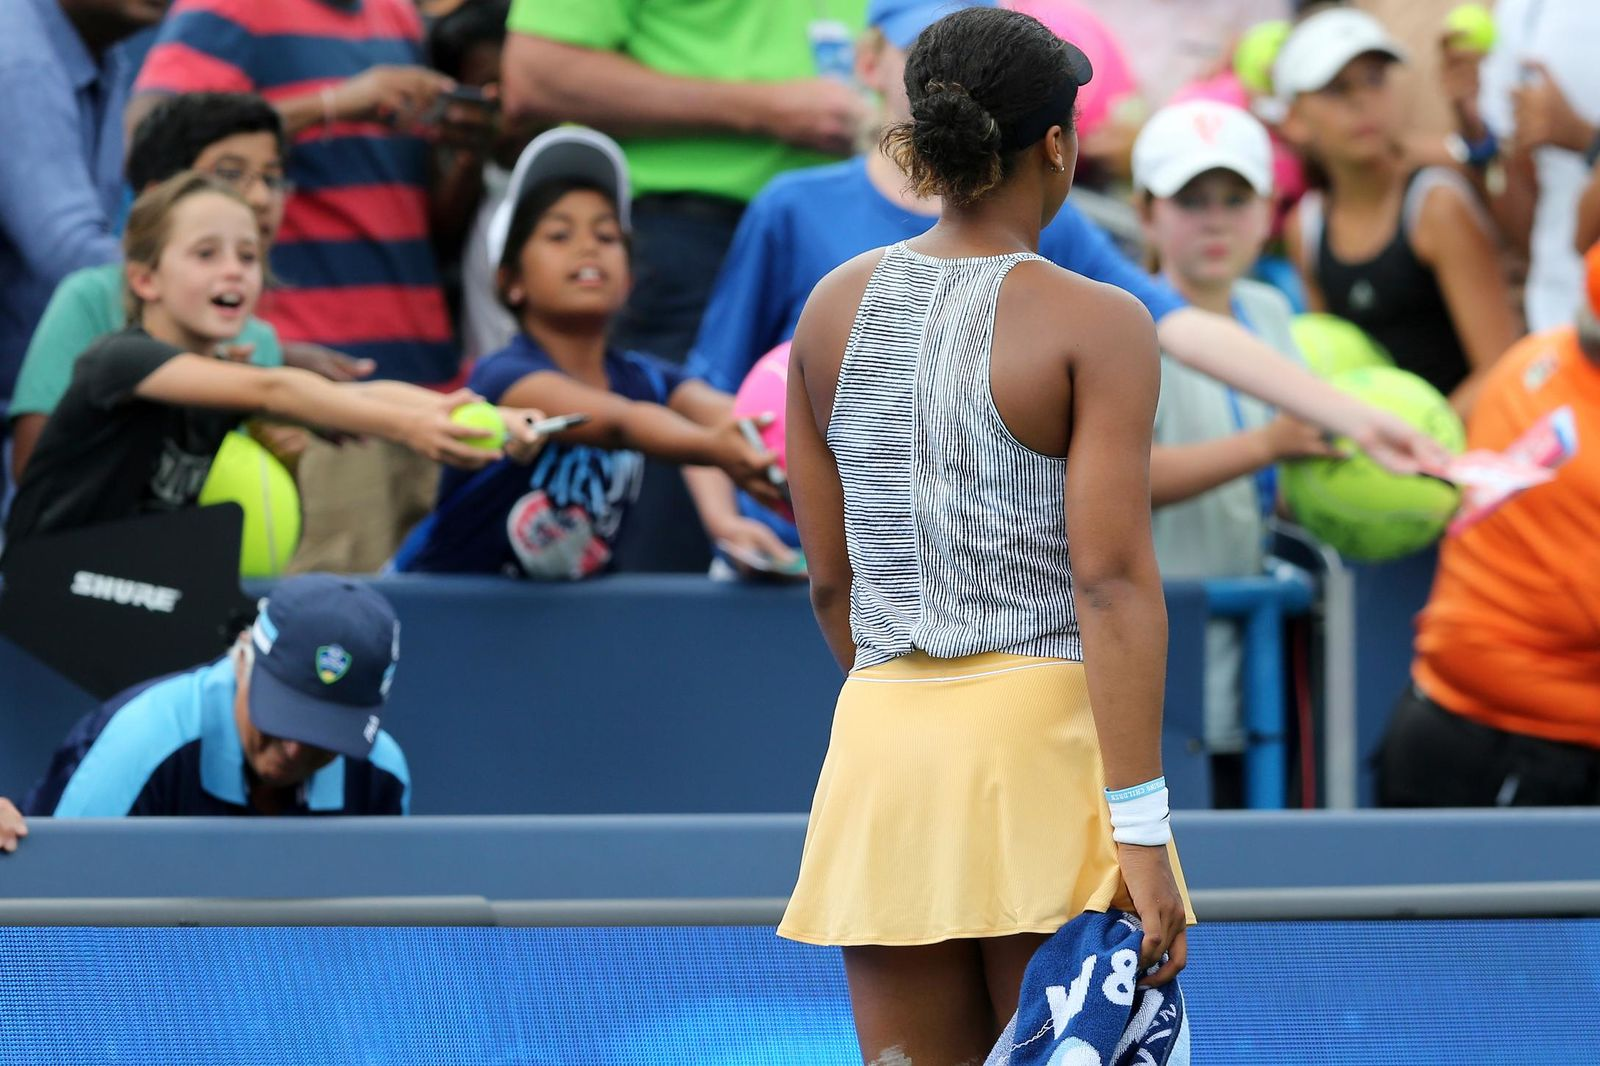 Naomi Osaka, of Japan, walks off the court after withdrawing from the match against Sofia Kenin, of the United States, in the quarterfinals of the Western & Southern Open tennis tournament Friday, Aug. 16, 2019, in Mason, Ohio. Osaka withdrew from the match. (Kareem Elgazzar/The Cincinnati Enquirer via AP)